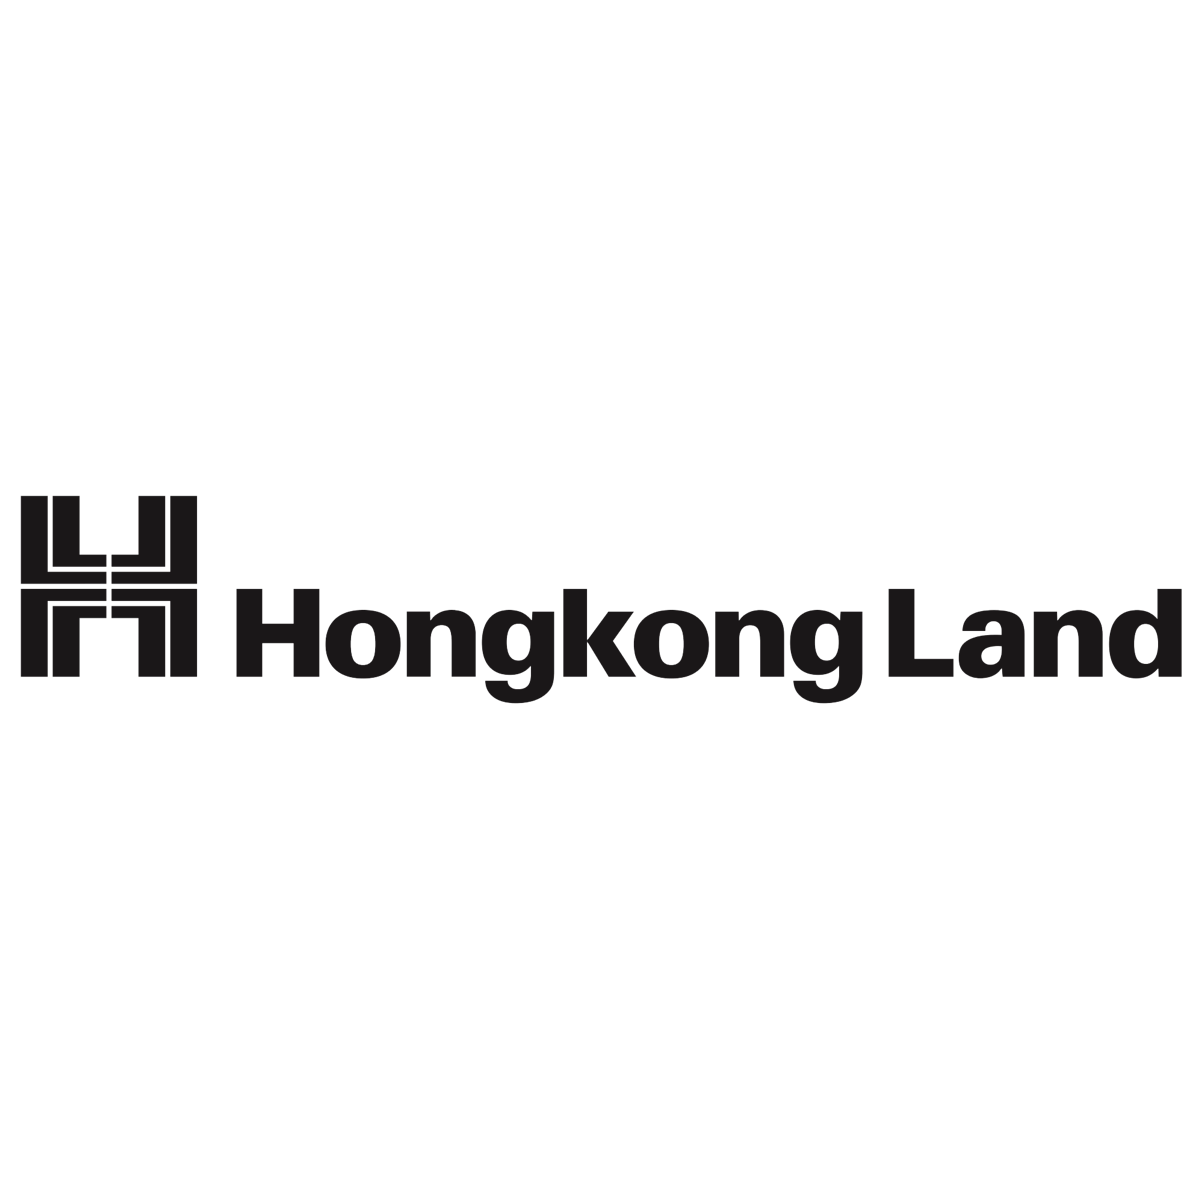 Hongkong Land Holdings Ltd - CIMB Research 2017-08-04: Has The Most Valuable Assets In HK, Trading At The Cheapest Price